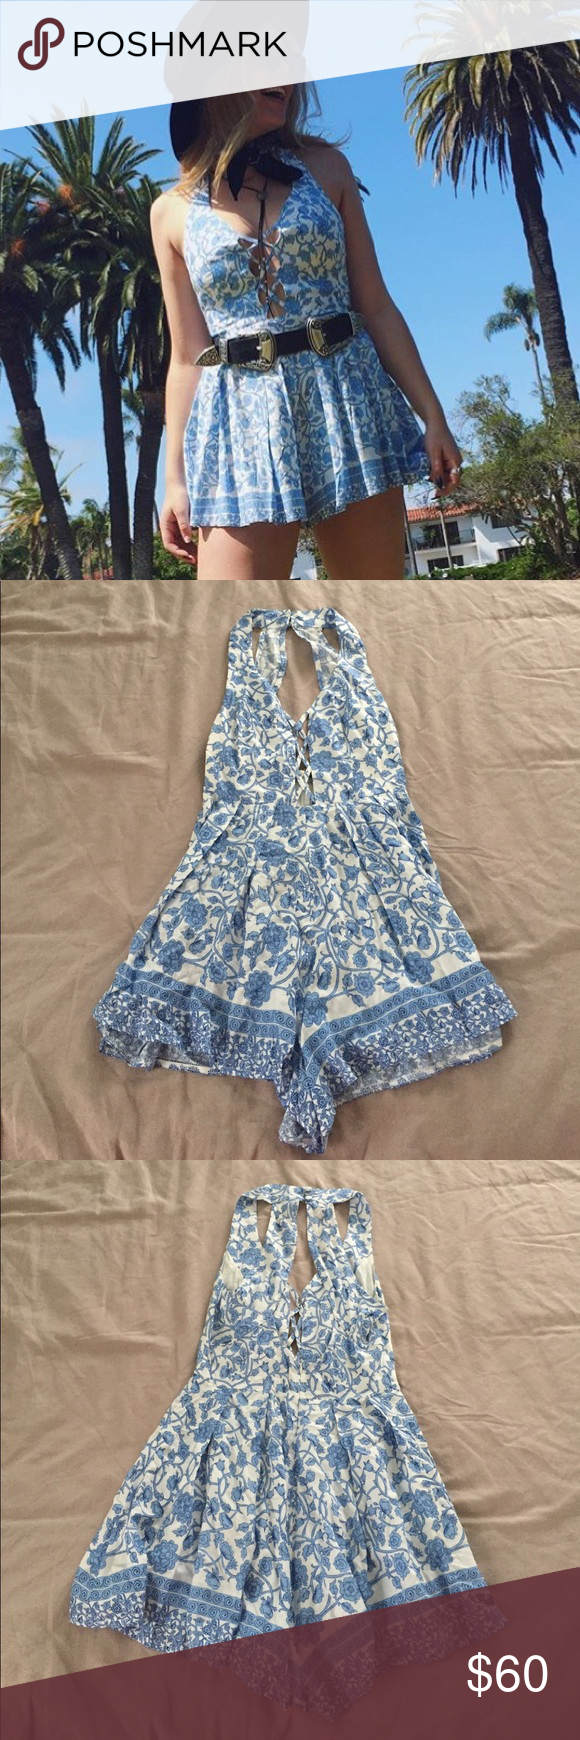 d5104a782b4e Rumor Boutique Floral Romper Blue and white floral printed romper form LF.  Only worn once! Invisible back zip closure. Neckline detail. LF Pants  Jumpsuits   ...